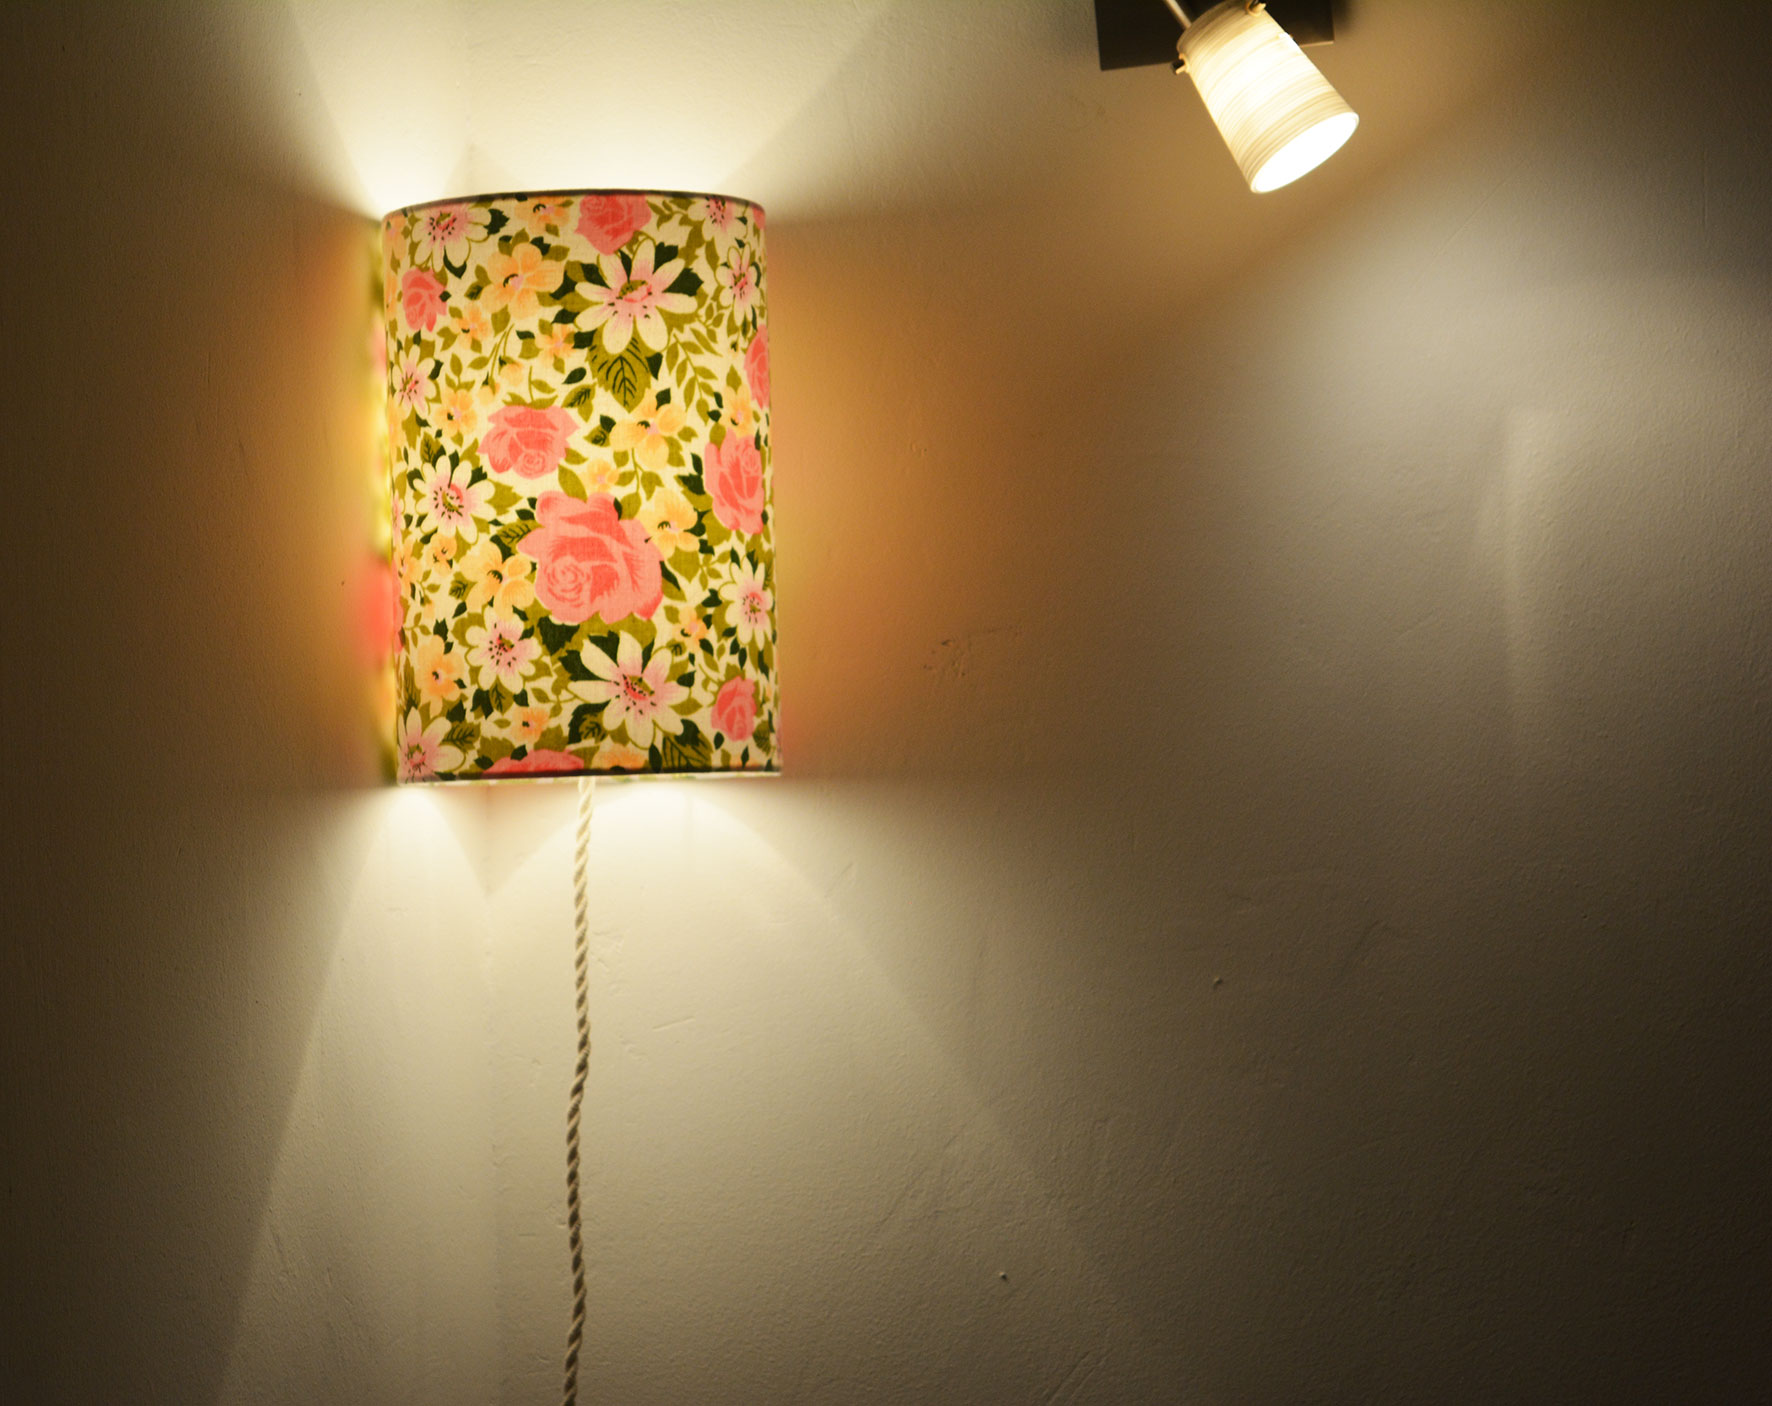 Luminaires nice babalux a ouvert son atelier c cile na - Mail ouvert nice ...